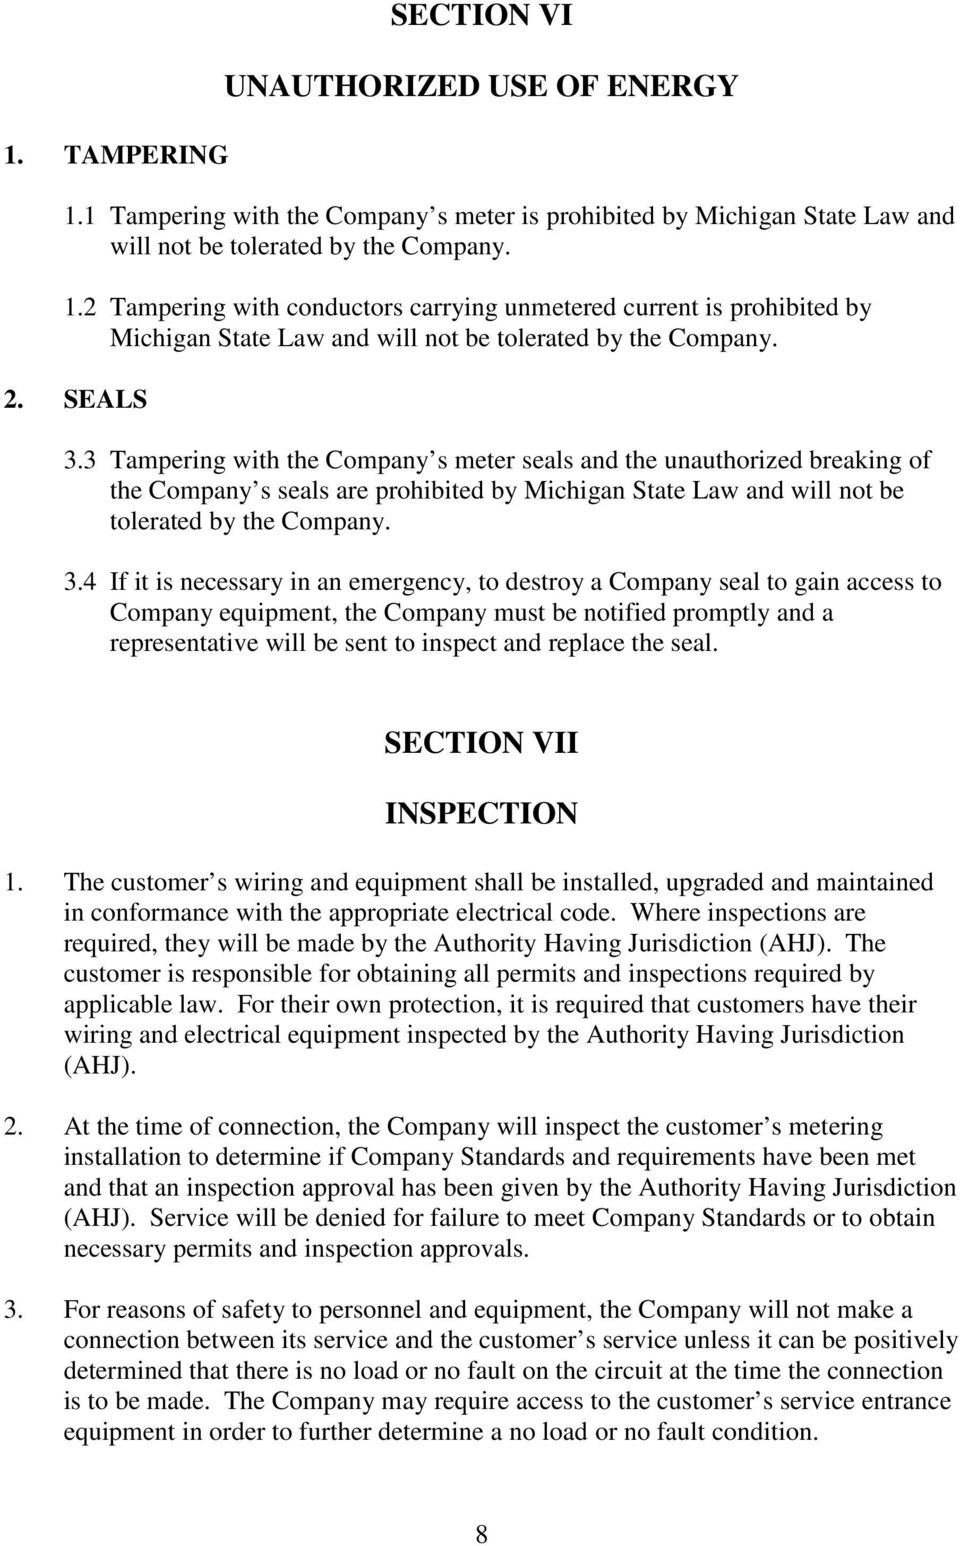 3 Tampering with the Company s meter seals and the unauthorized breaking of the Company s seals are prohibited by Michigan State Law and will not be tolerated by the Company. 3.